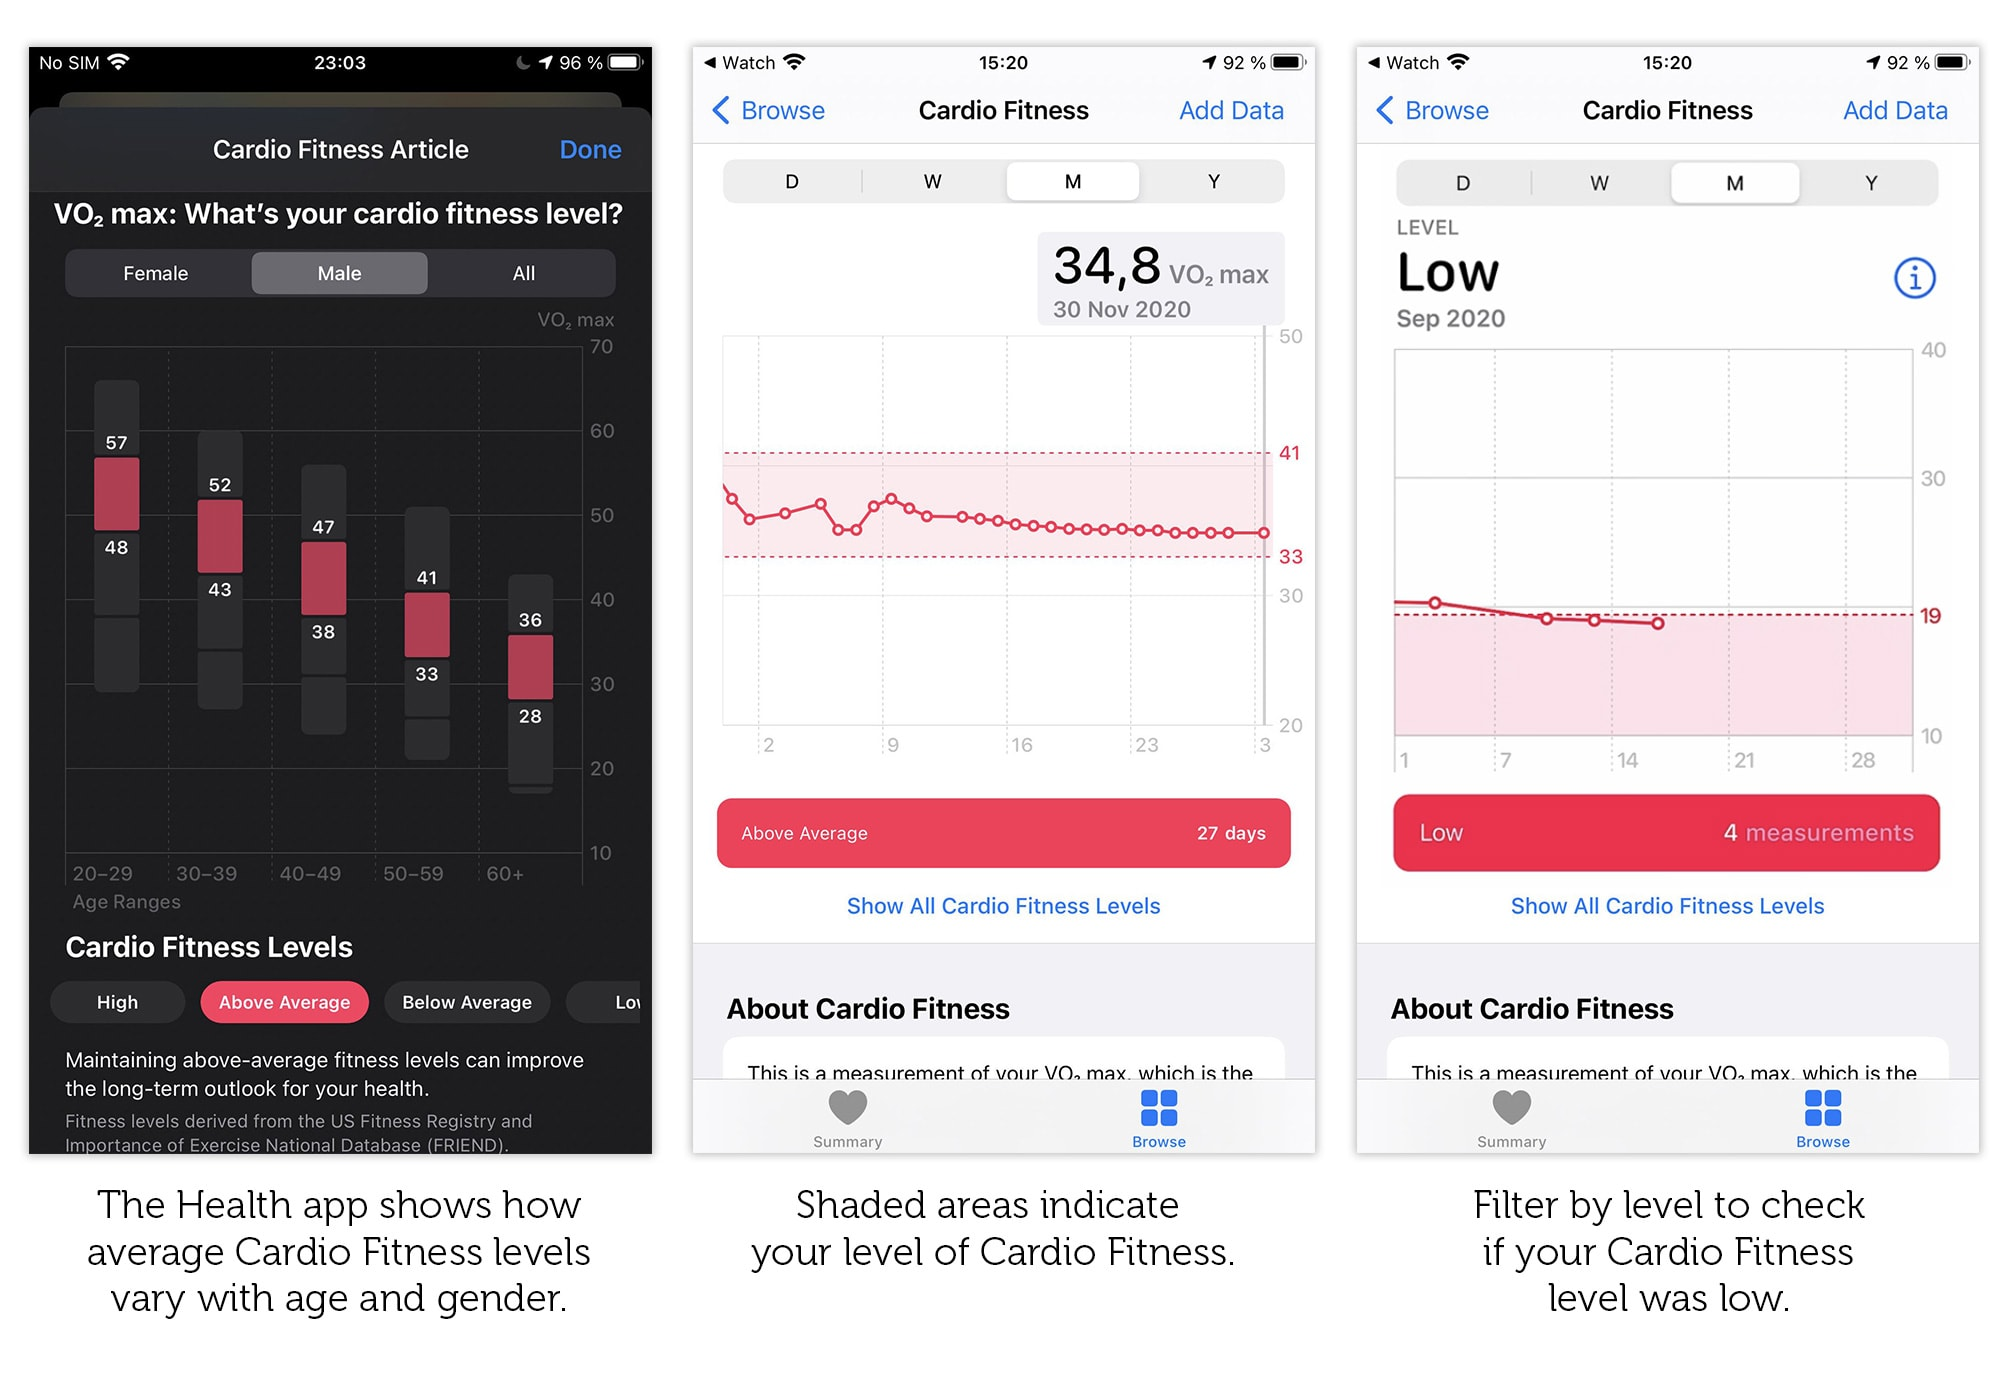 Check your Cardio Fitness Levels in the Health app